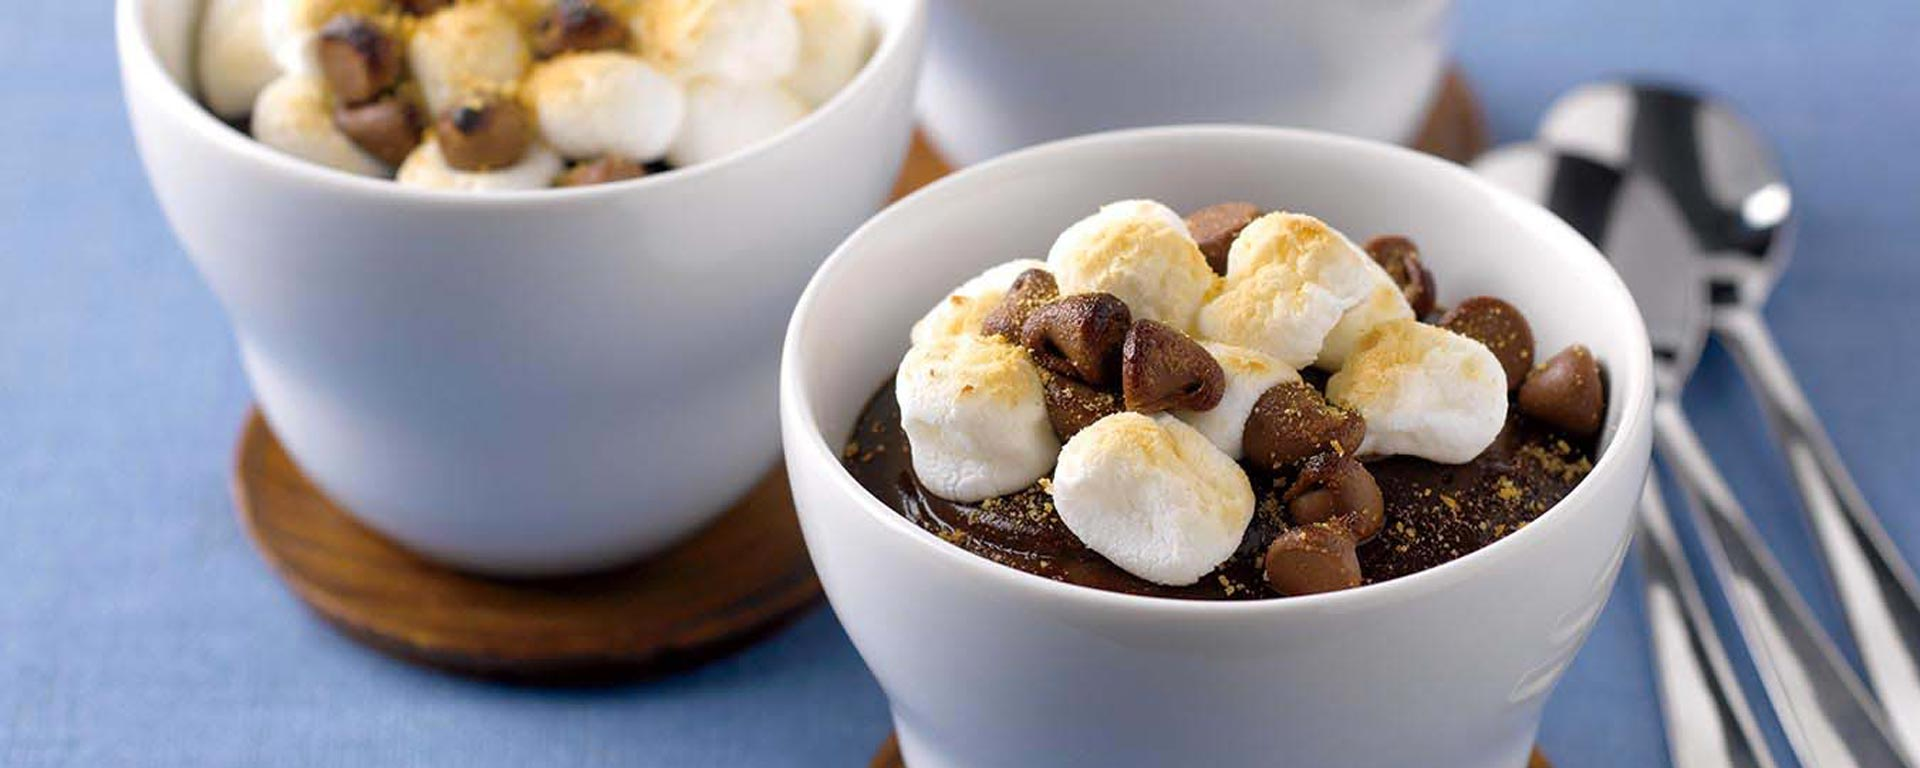 Photo for - Gobelets de pouding s'mores au chocolat